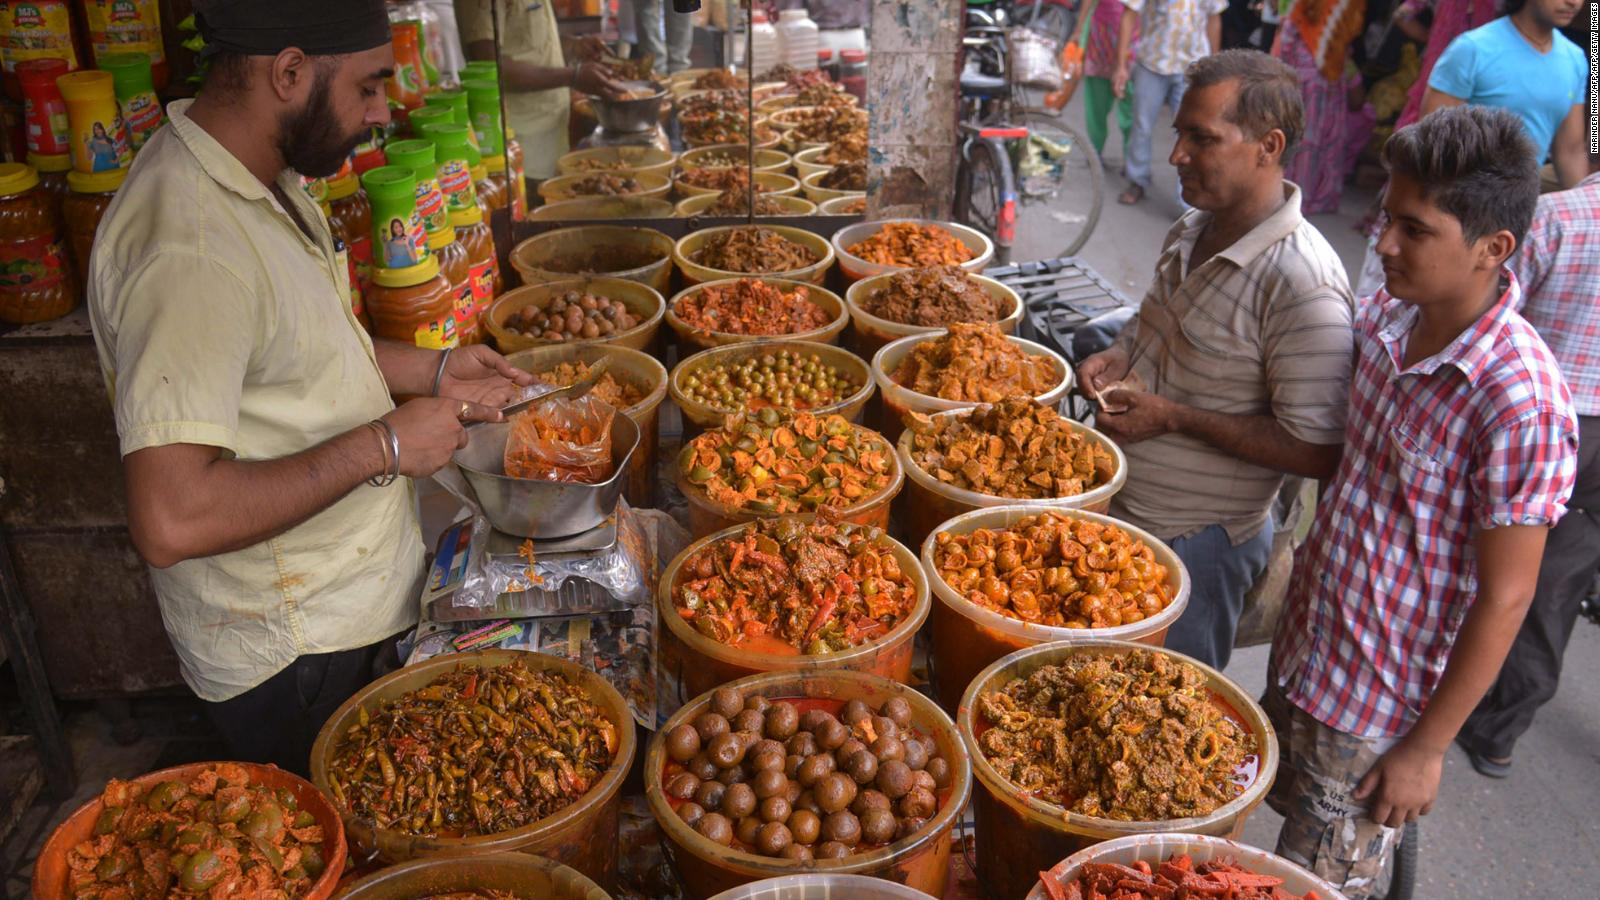 Indian Food The Best Dishes In Each Region Cnn Travel,Prime Rib Recipes Traeger